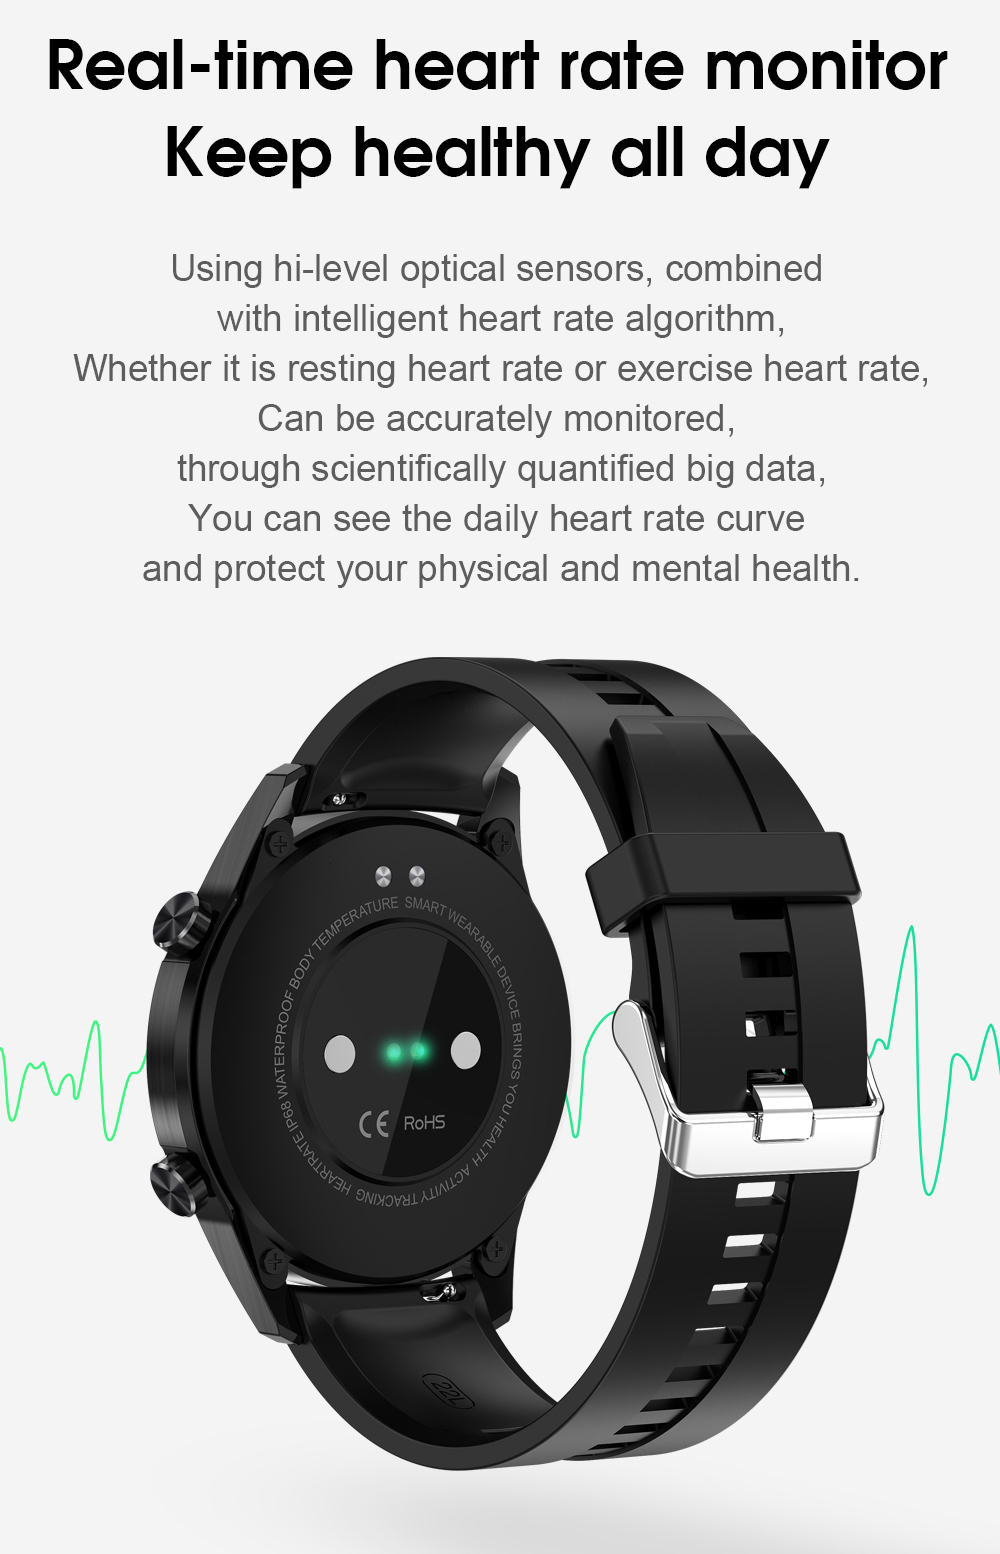 Hfc3d4c48ae6640299be94a932f164f71r Timewolf IP68 Smart Watch Men Android 2020 Full Touch Smartwatch Men Women Smart Watch For Huawei Xiaomi Apple IOS Android Phone